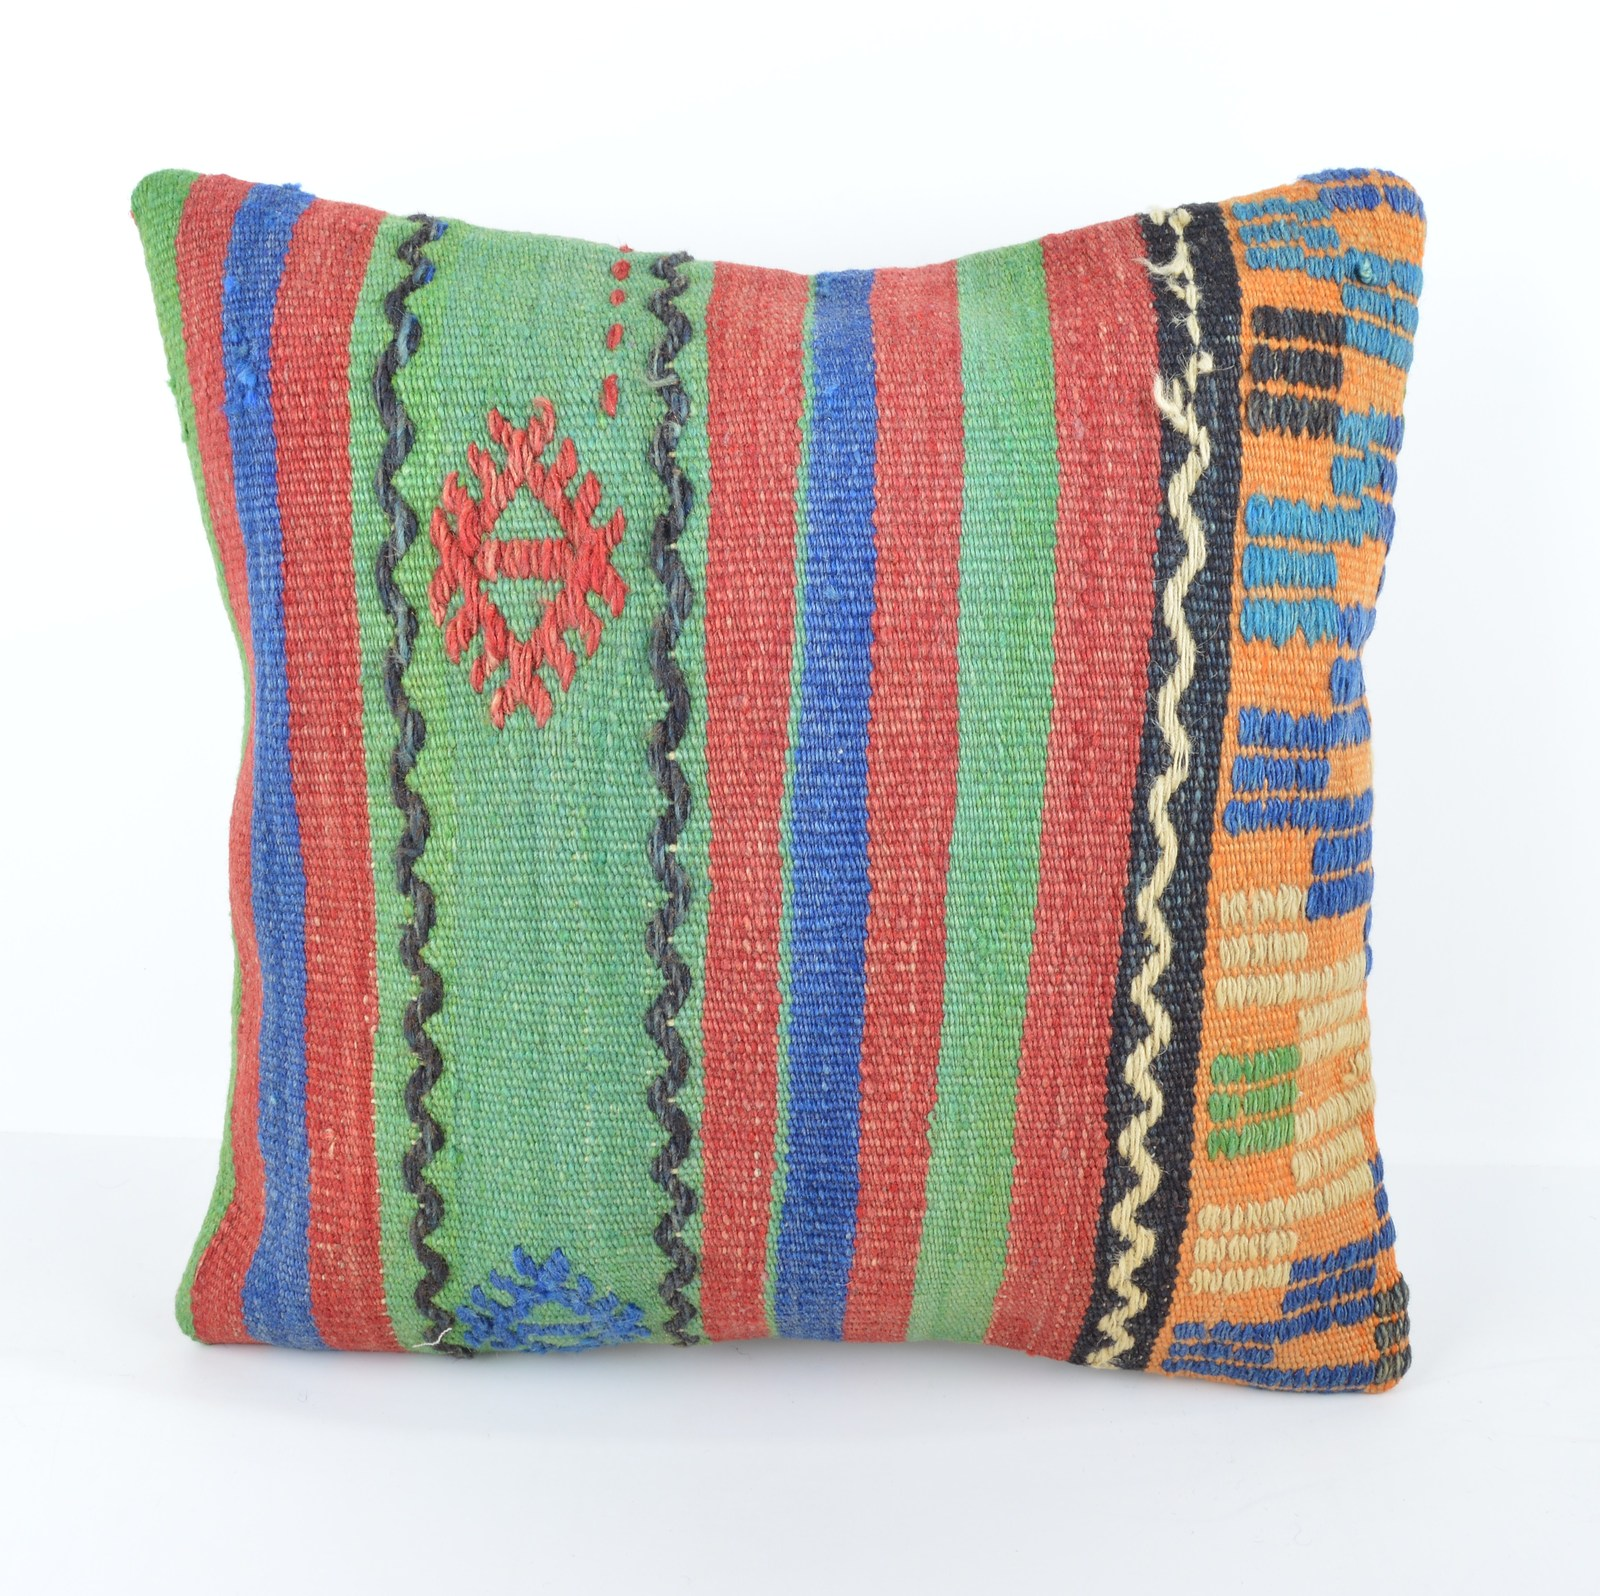 throw pillows,kilim cushion,rustic home decor pillow,kelim kissen,floor cushion, - Pillows